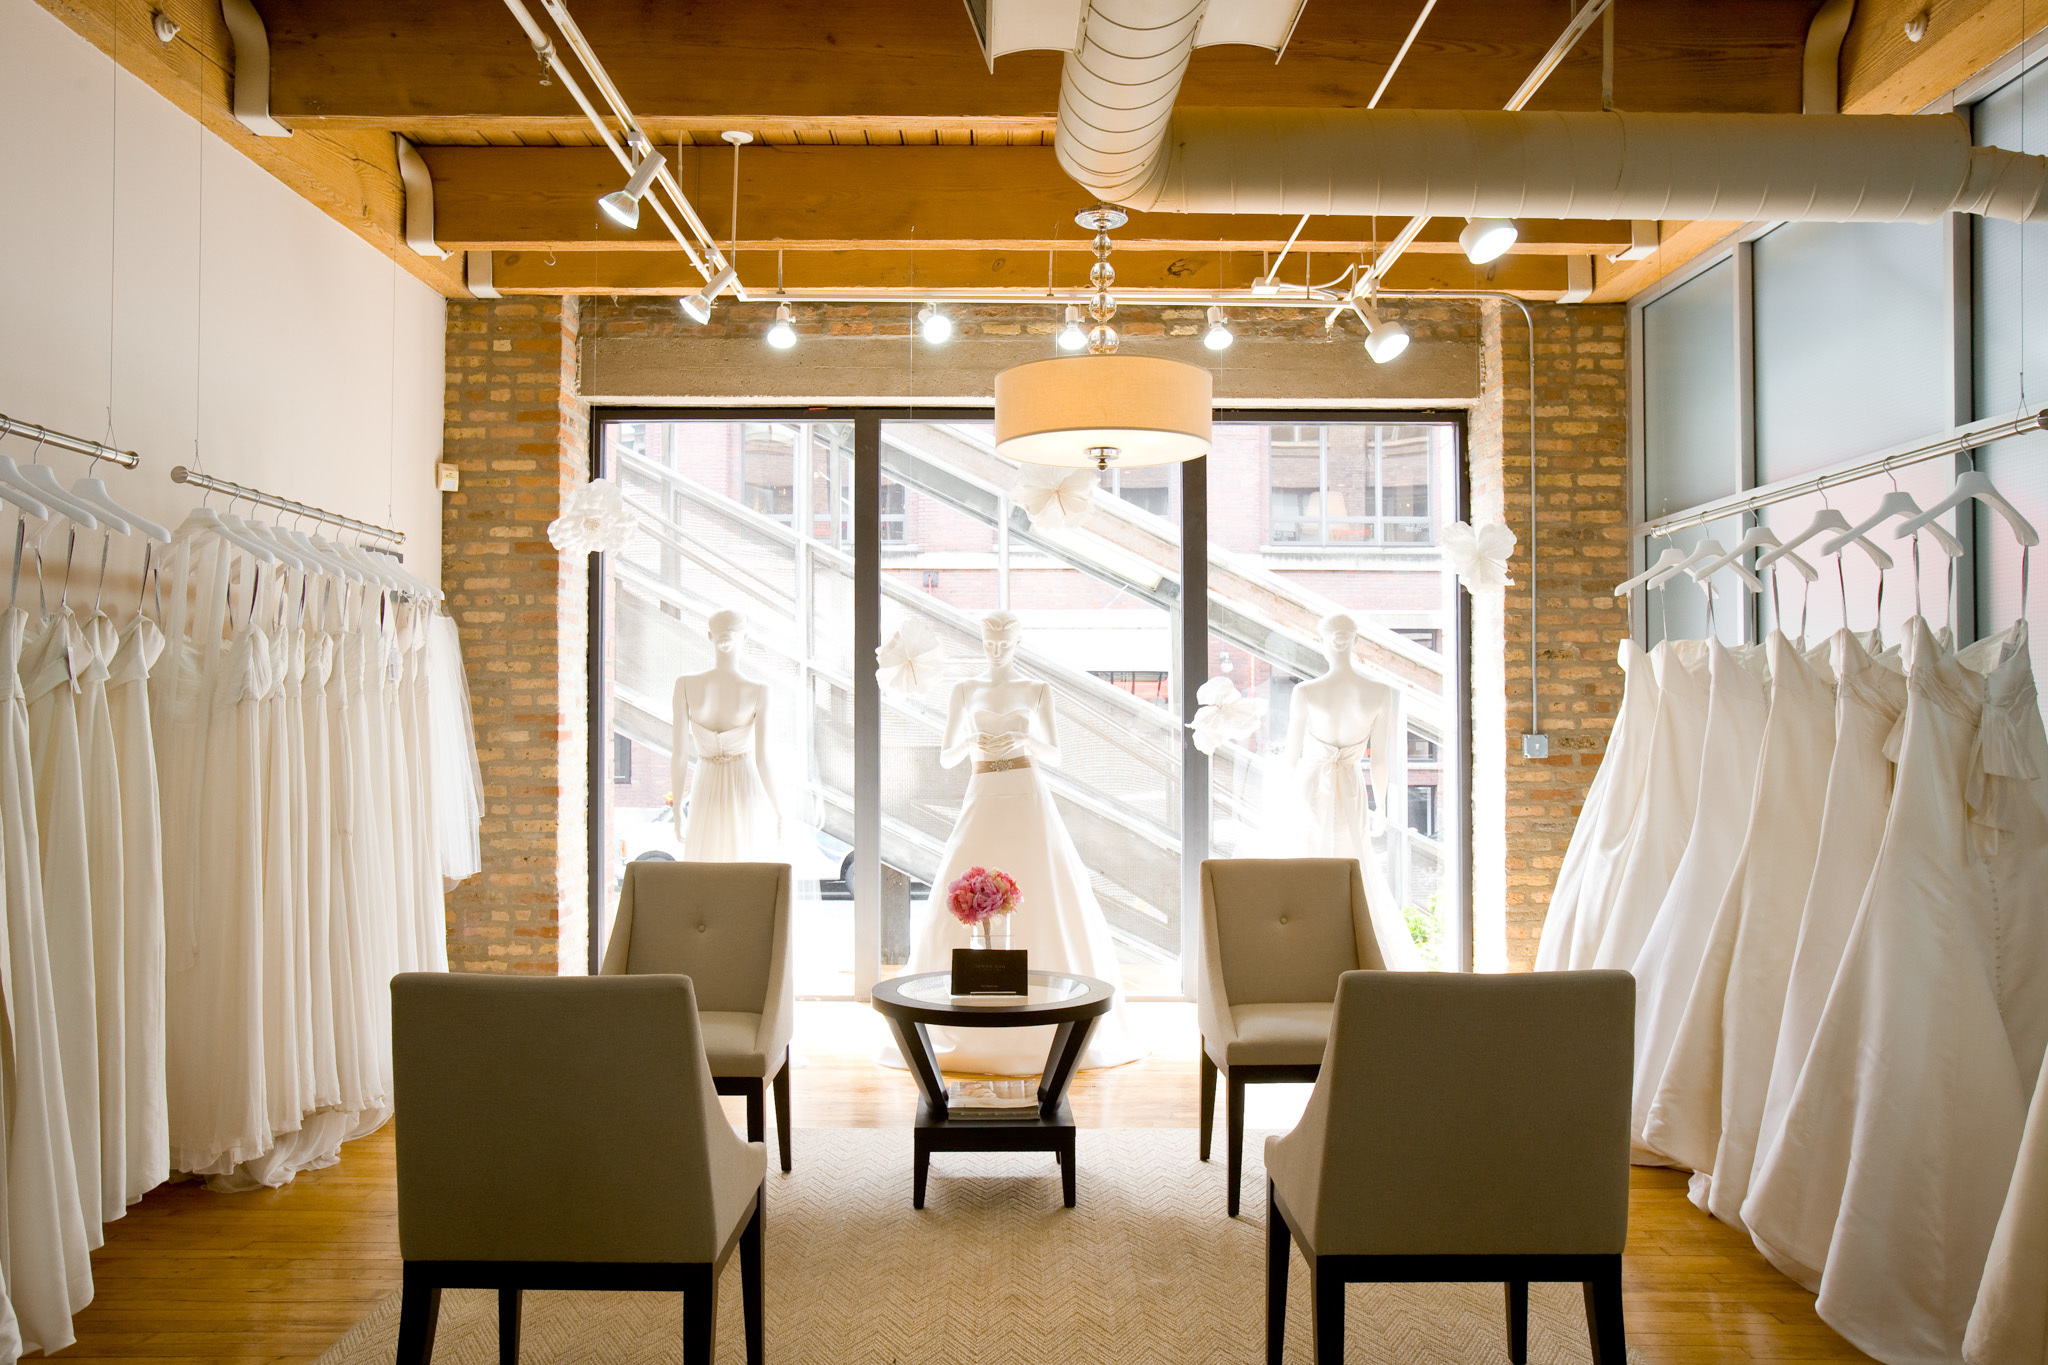 Bridal Shops In Chicago For The Perfect Wedding Dress